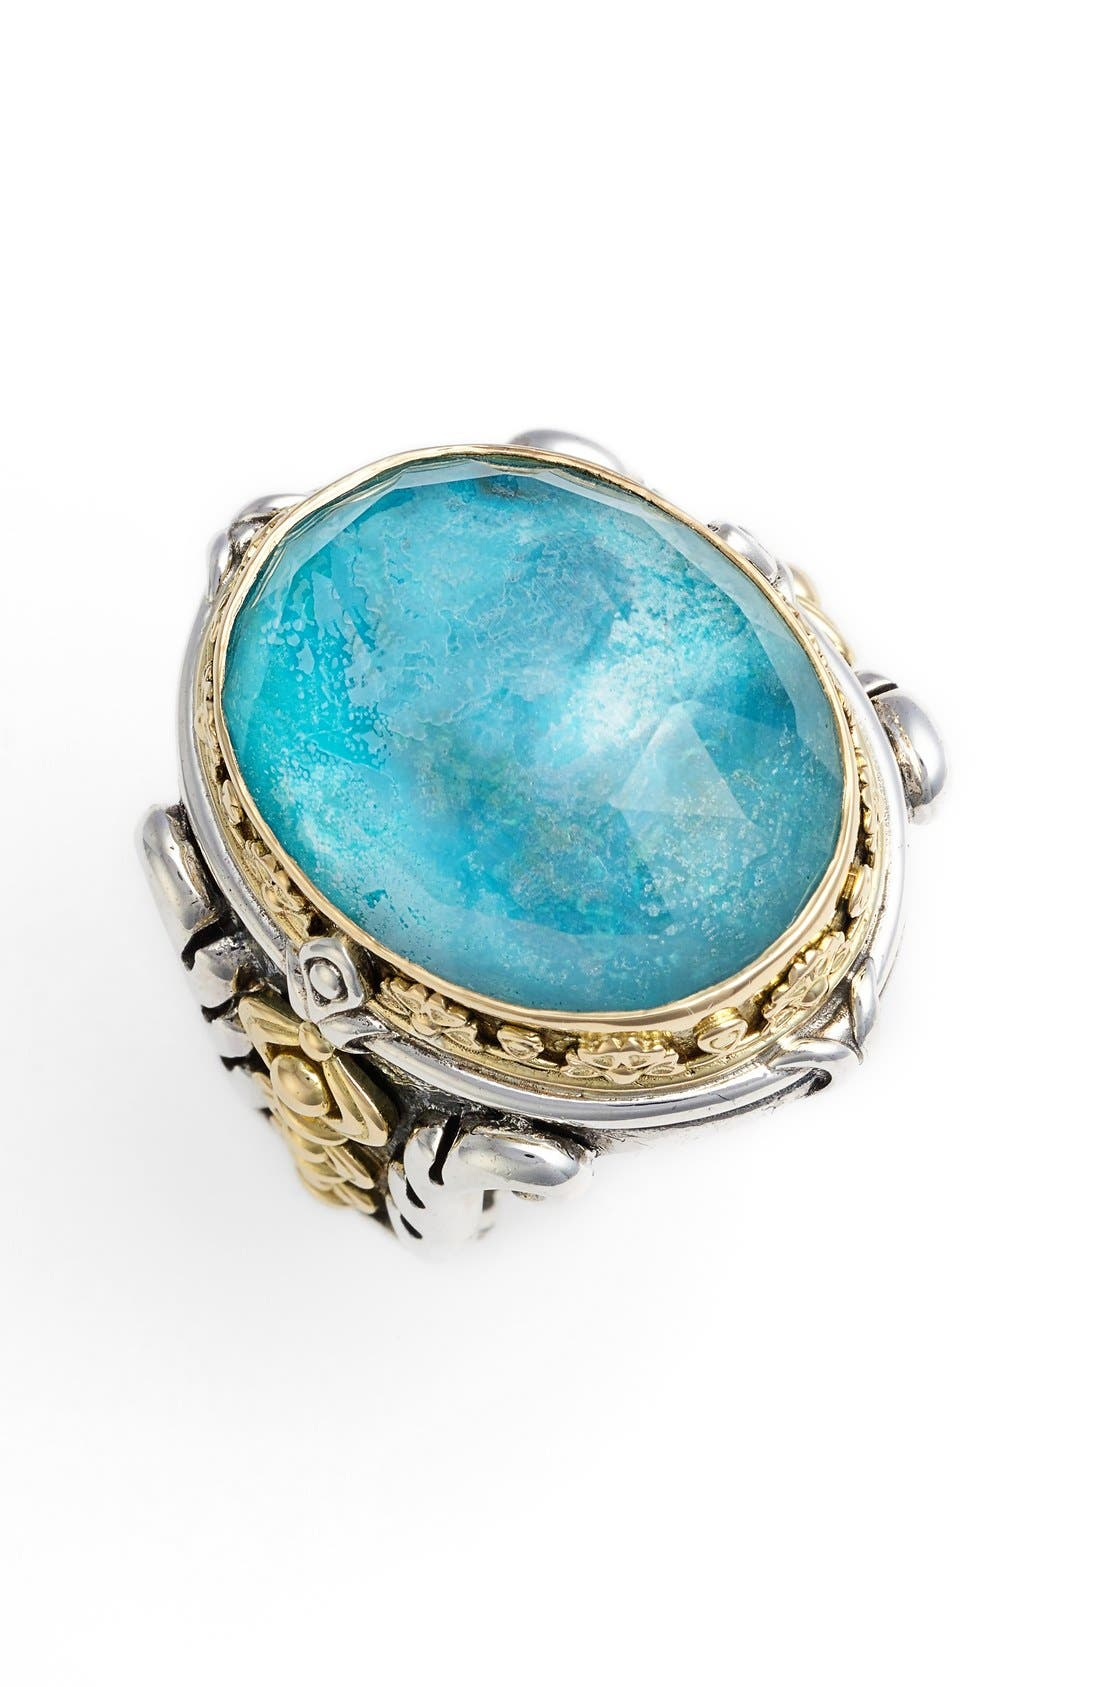 'Iliada' Large Oval Semiprecious Stone Ring,                             Main thumbnail 1, color,                             040